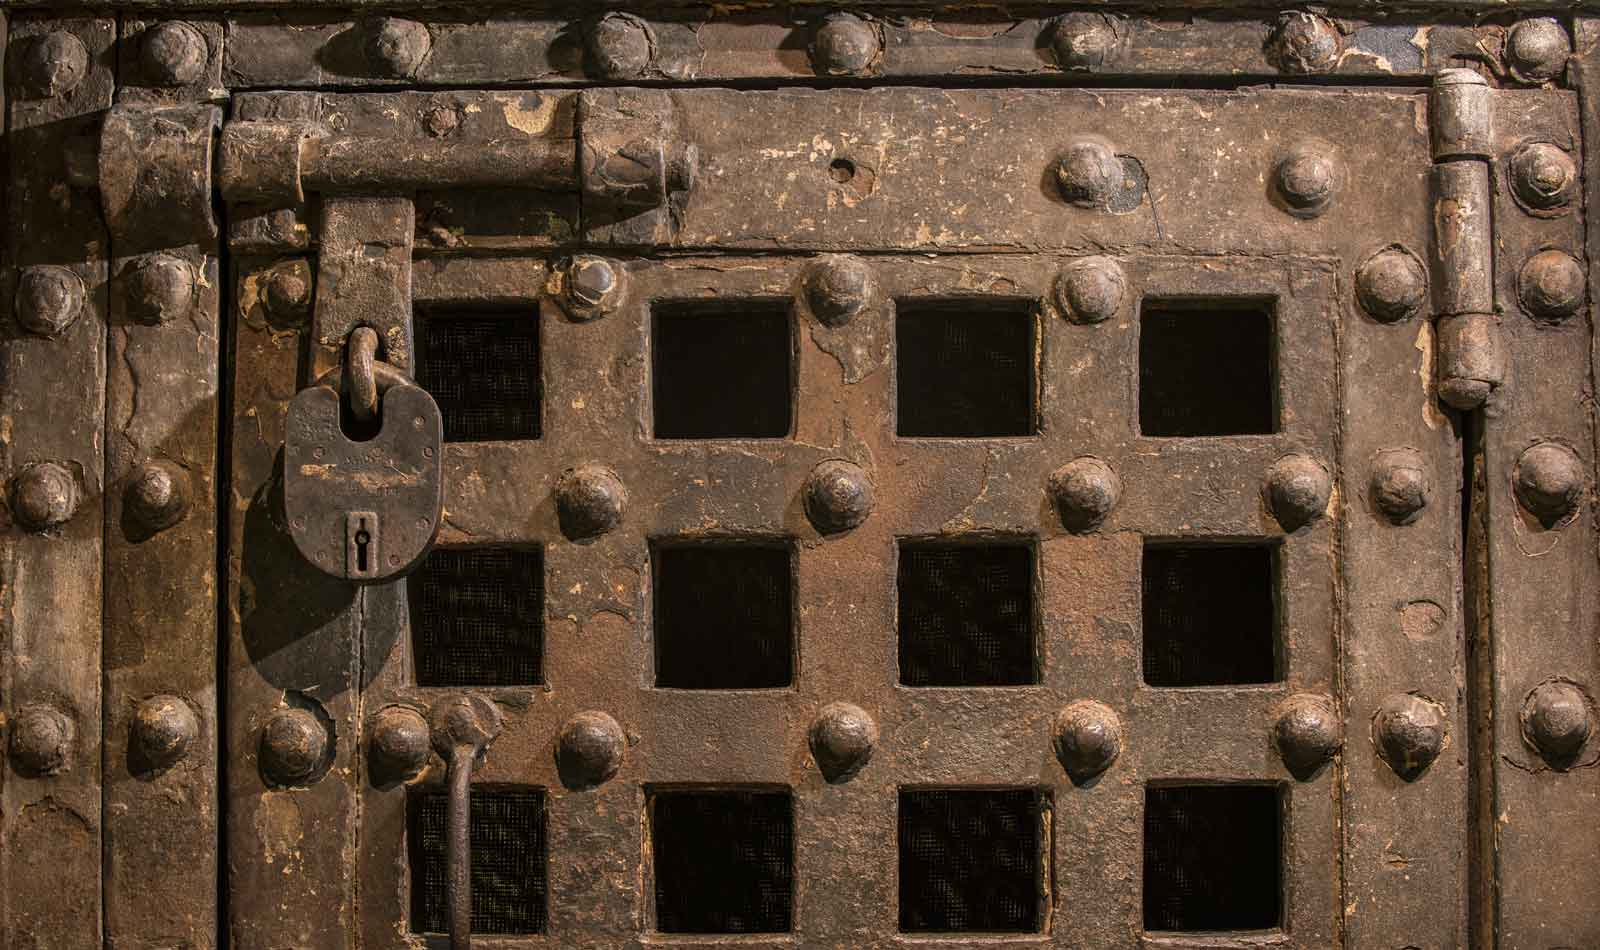 This heavy iron clad oak door comes from the inner courtyard where the prisoners exercised.